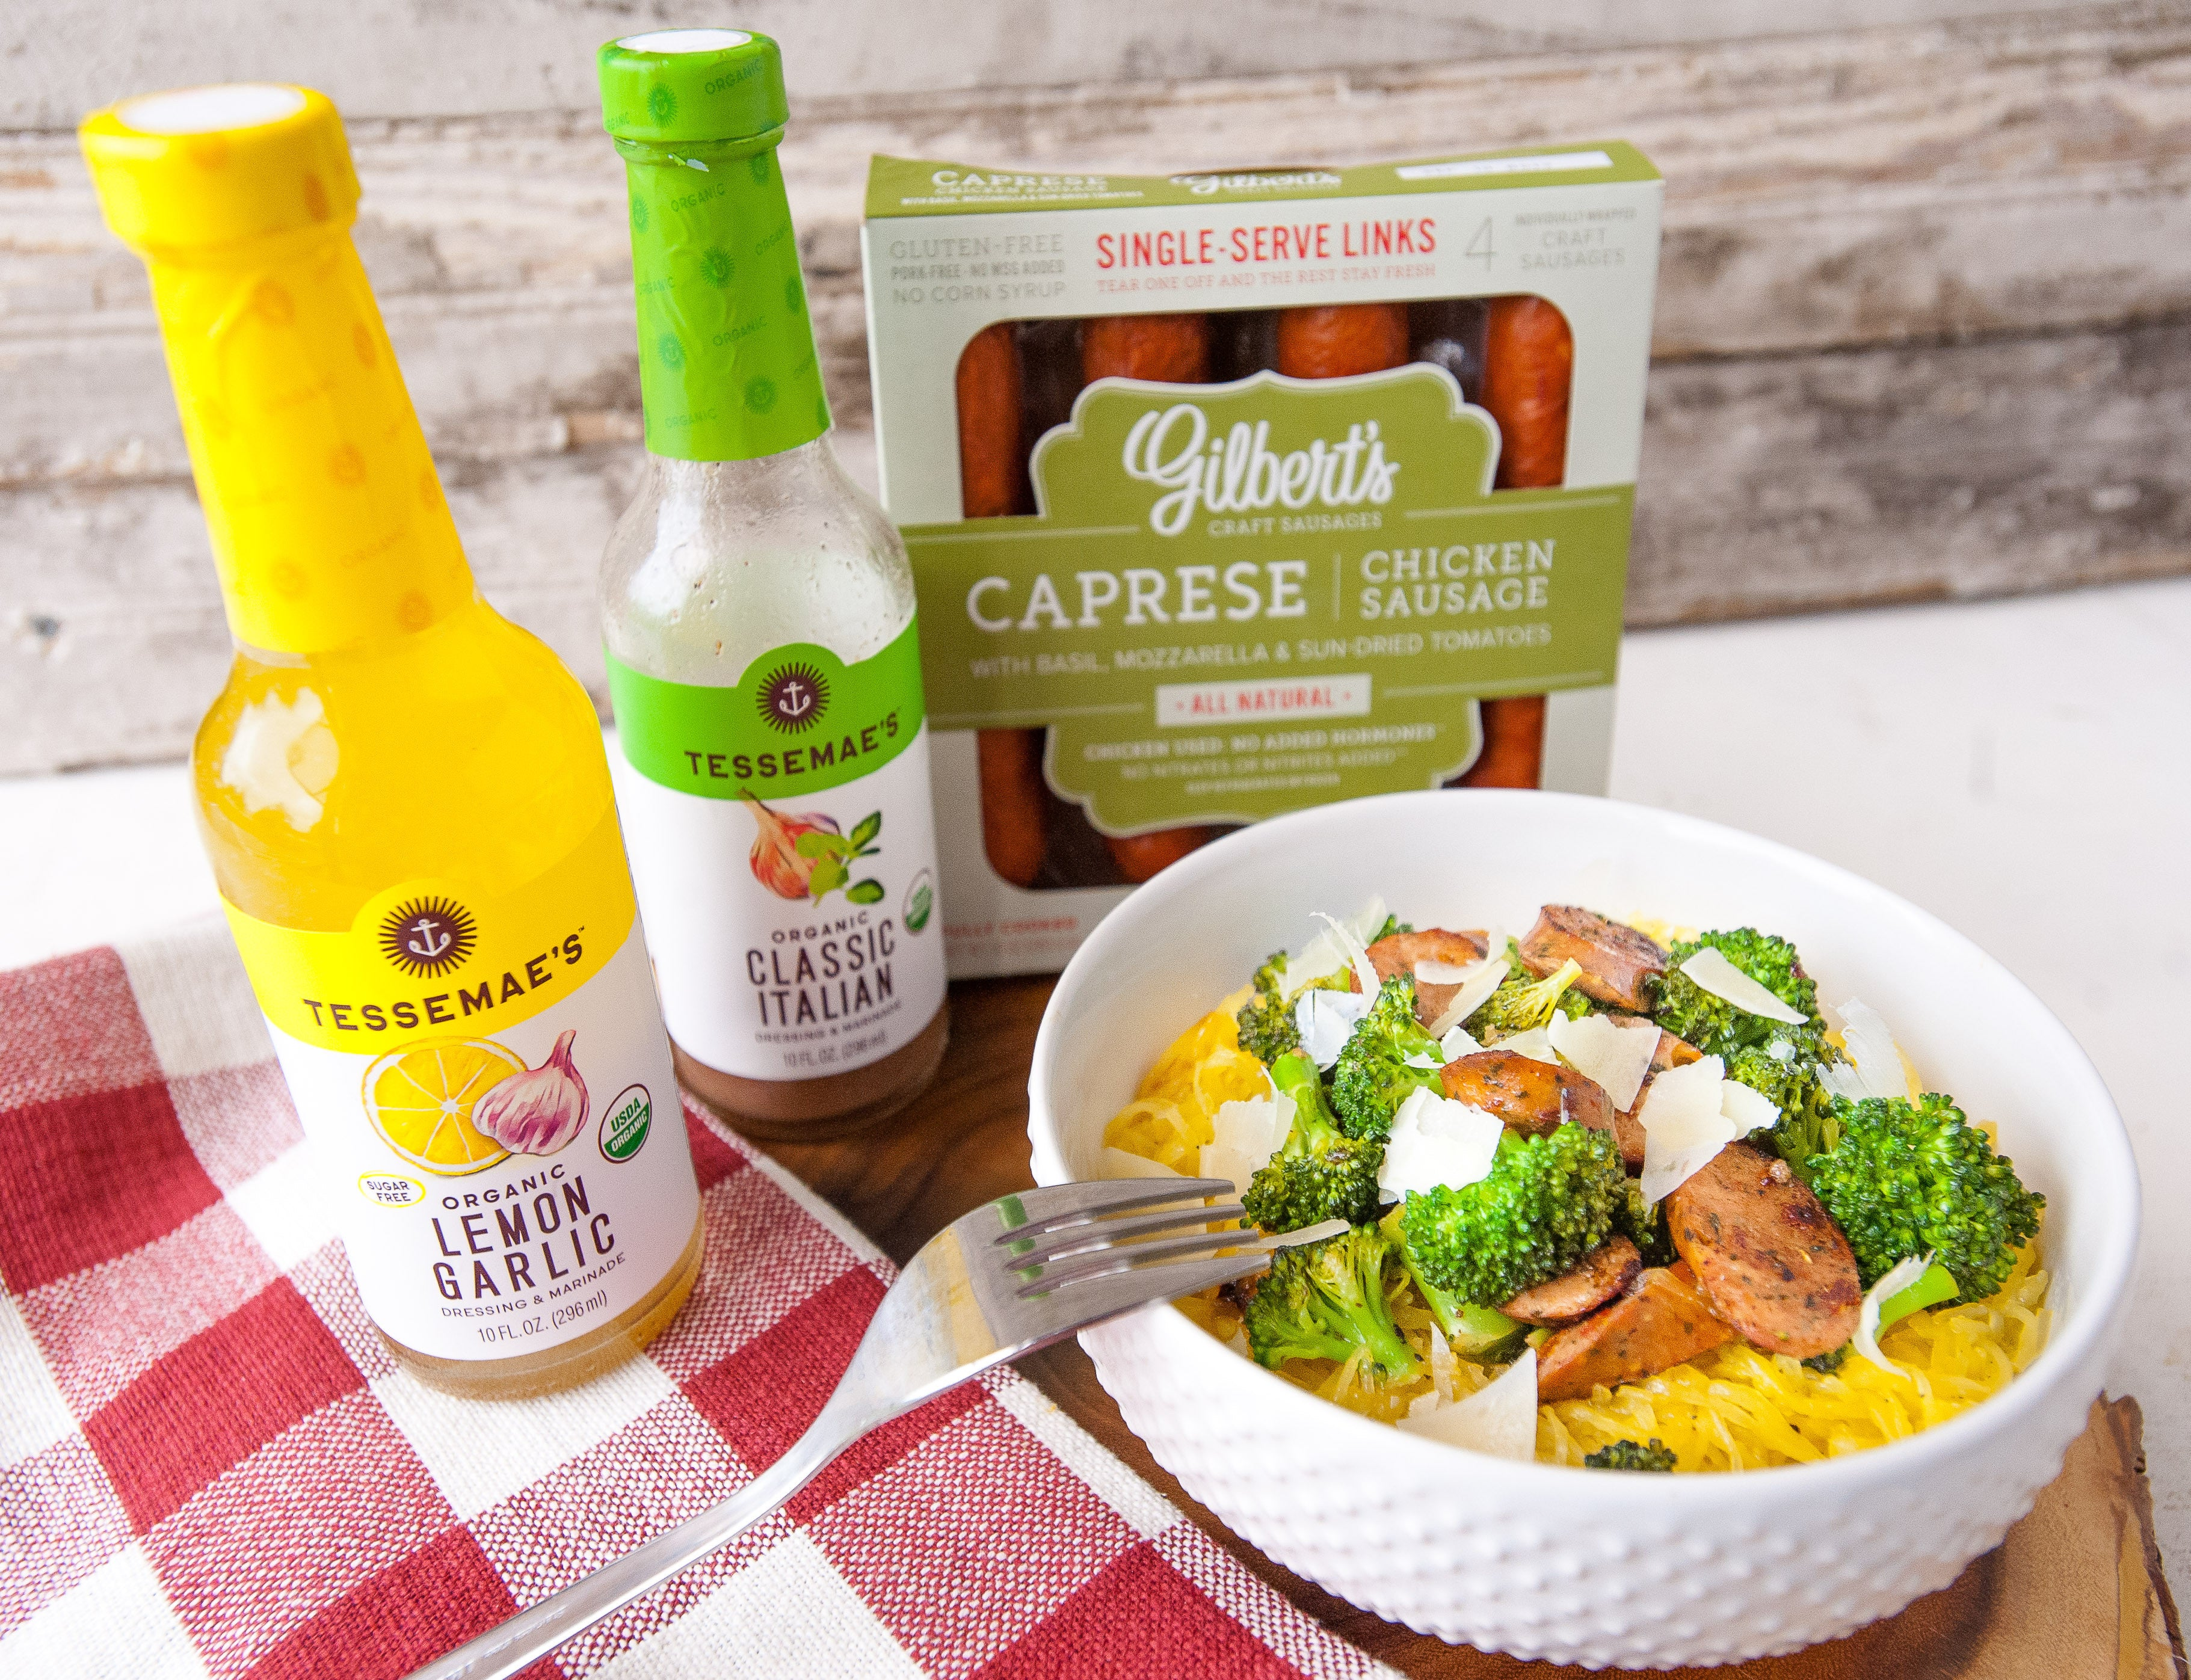 Cook with tessemaes tessemaes all natural recipe blog tessemaes we decided to practice practice more food freedom forever mantras by making this amazing dish with gilberts craft sausages that are made with all clean forumfinder Image collections